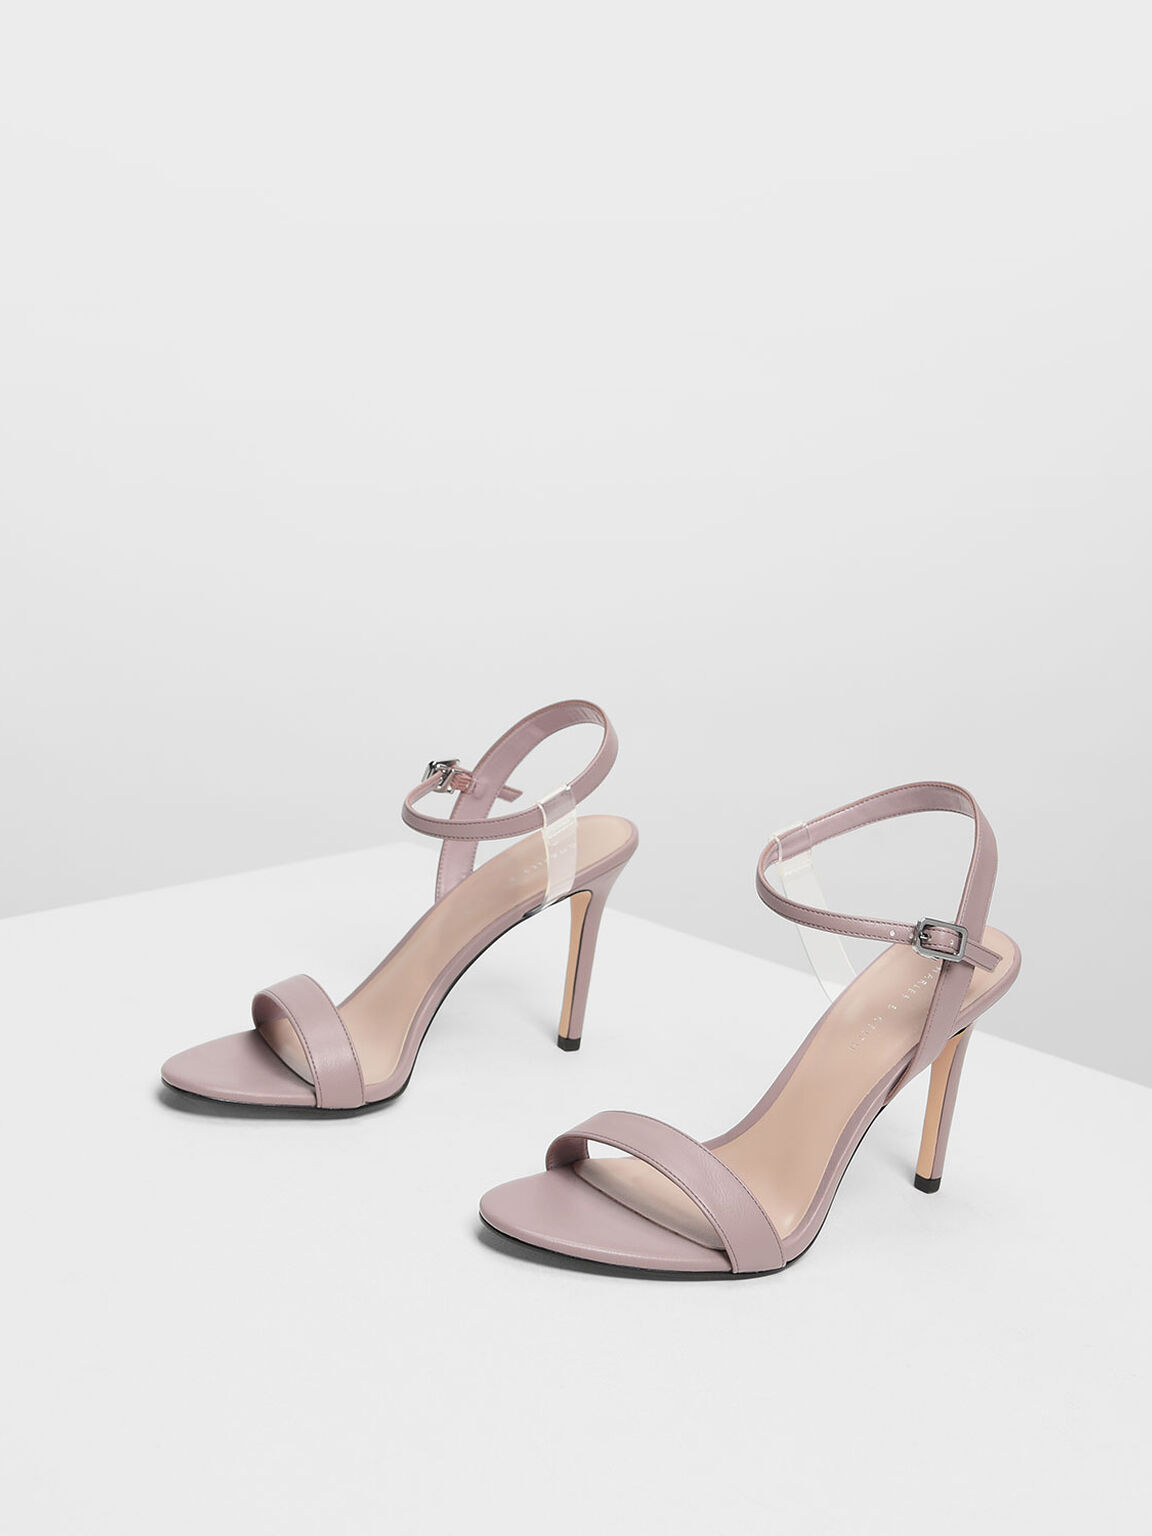 Transparent Strap Detail Heeled Sandals, Nude, hi-res